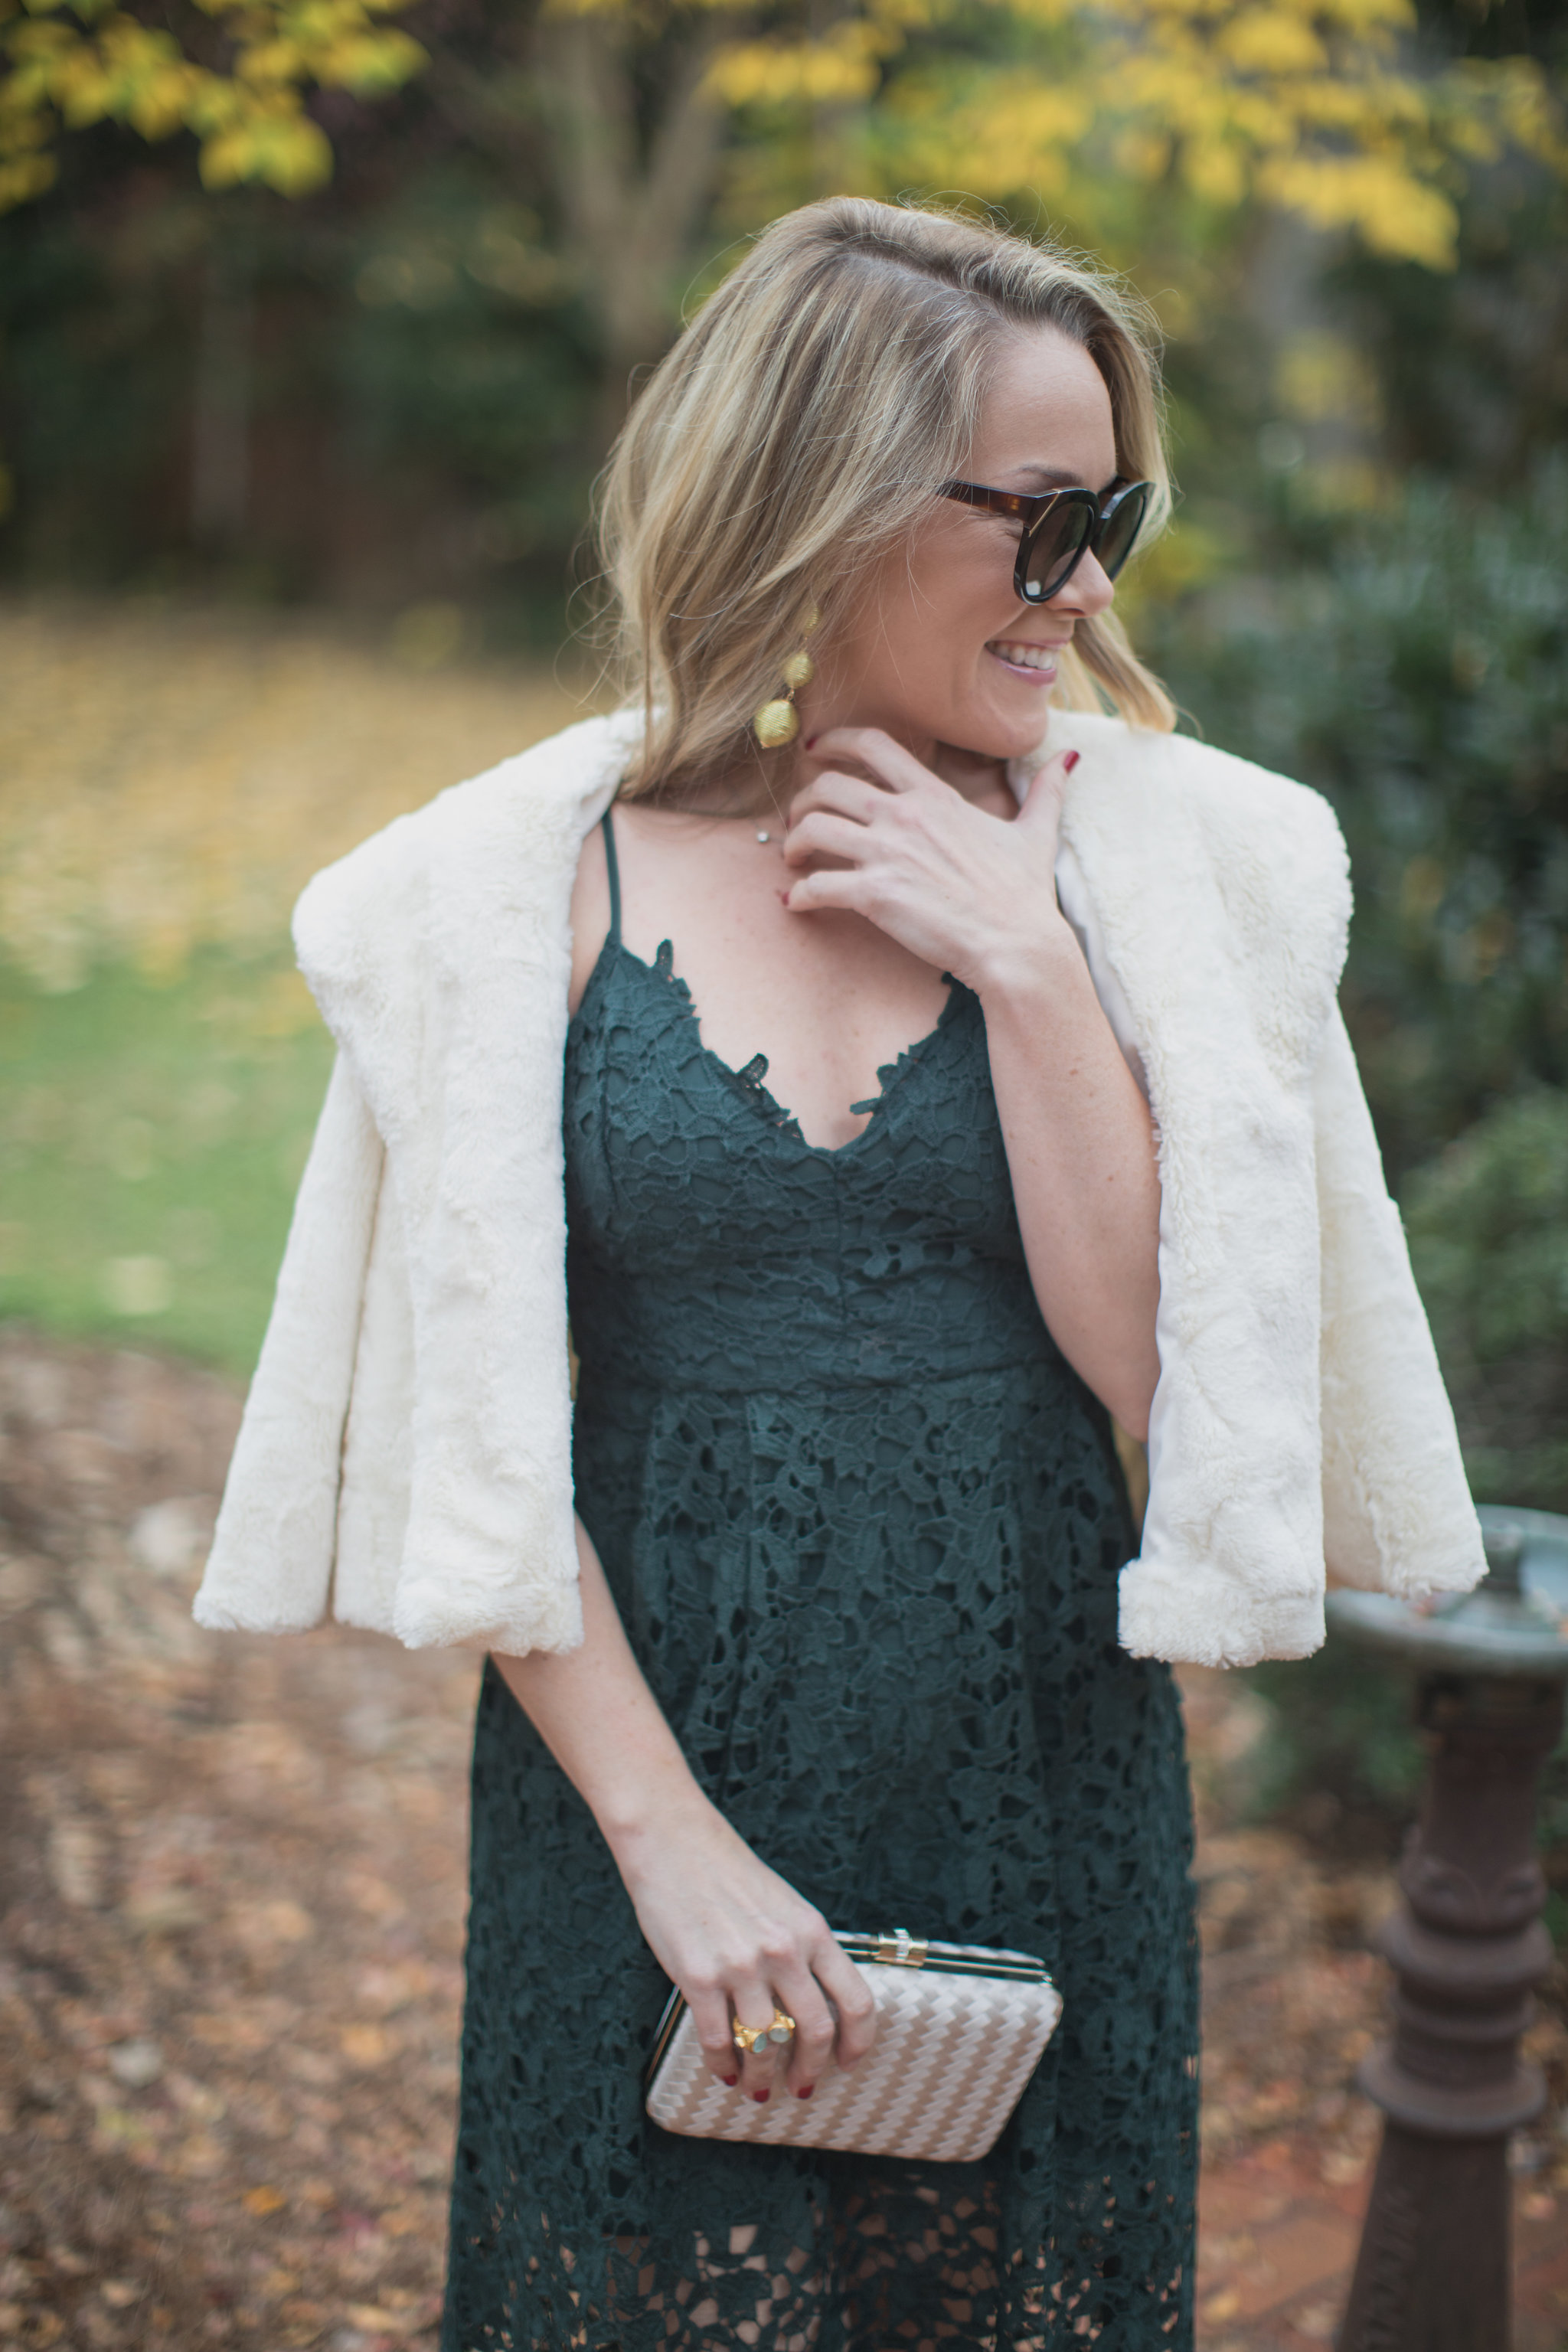 The perfect dress this holiday season is under $100. Check it out today on ECW! - The Perfect Holiday Dress under $100 by North Carolina fashion blogger Every Chic Way